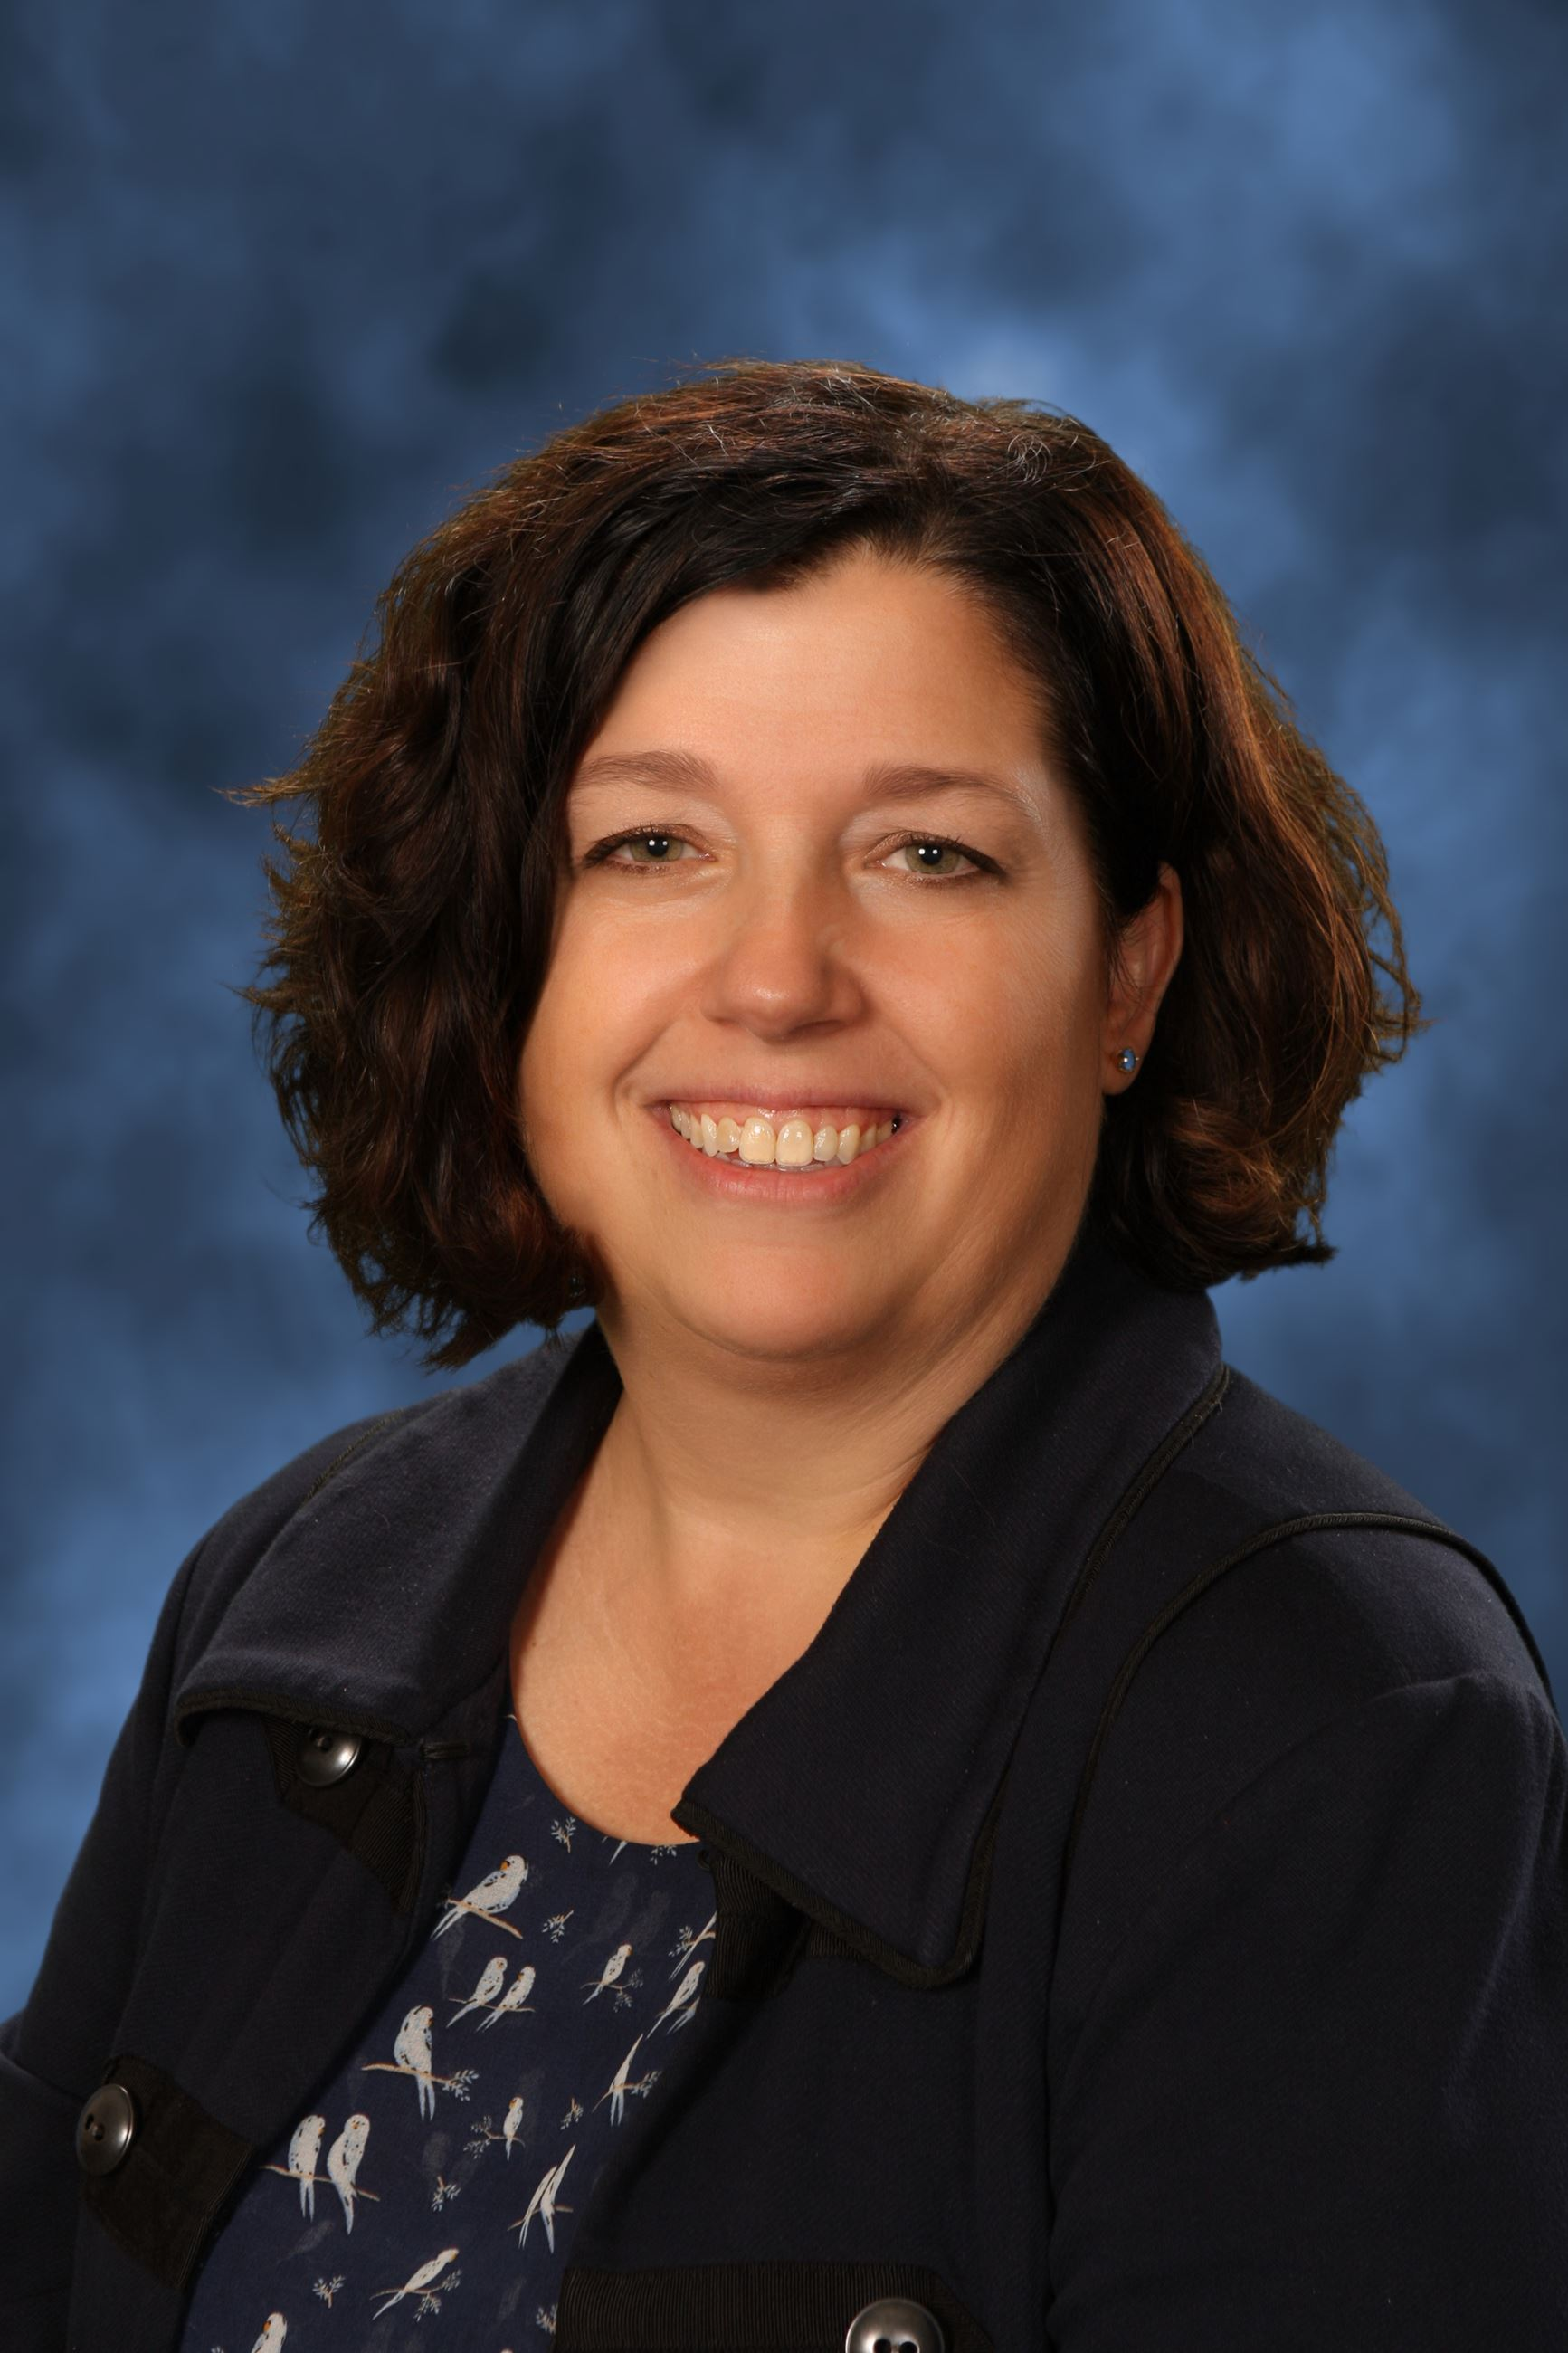 Gina Nash, City Manager